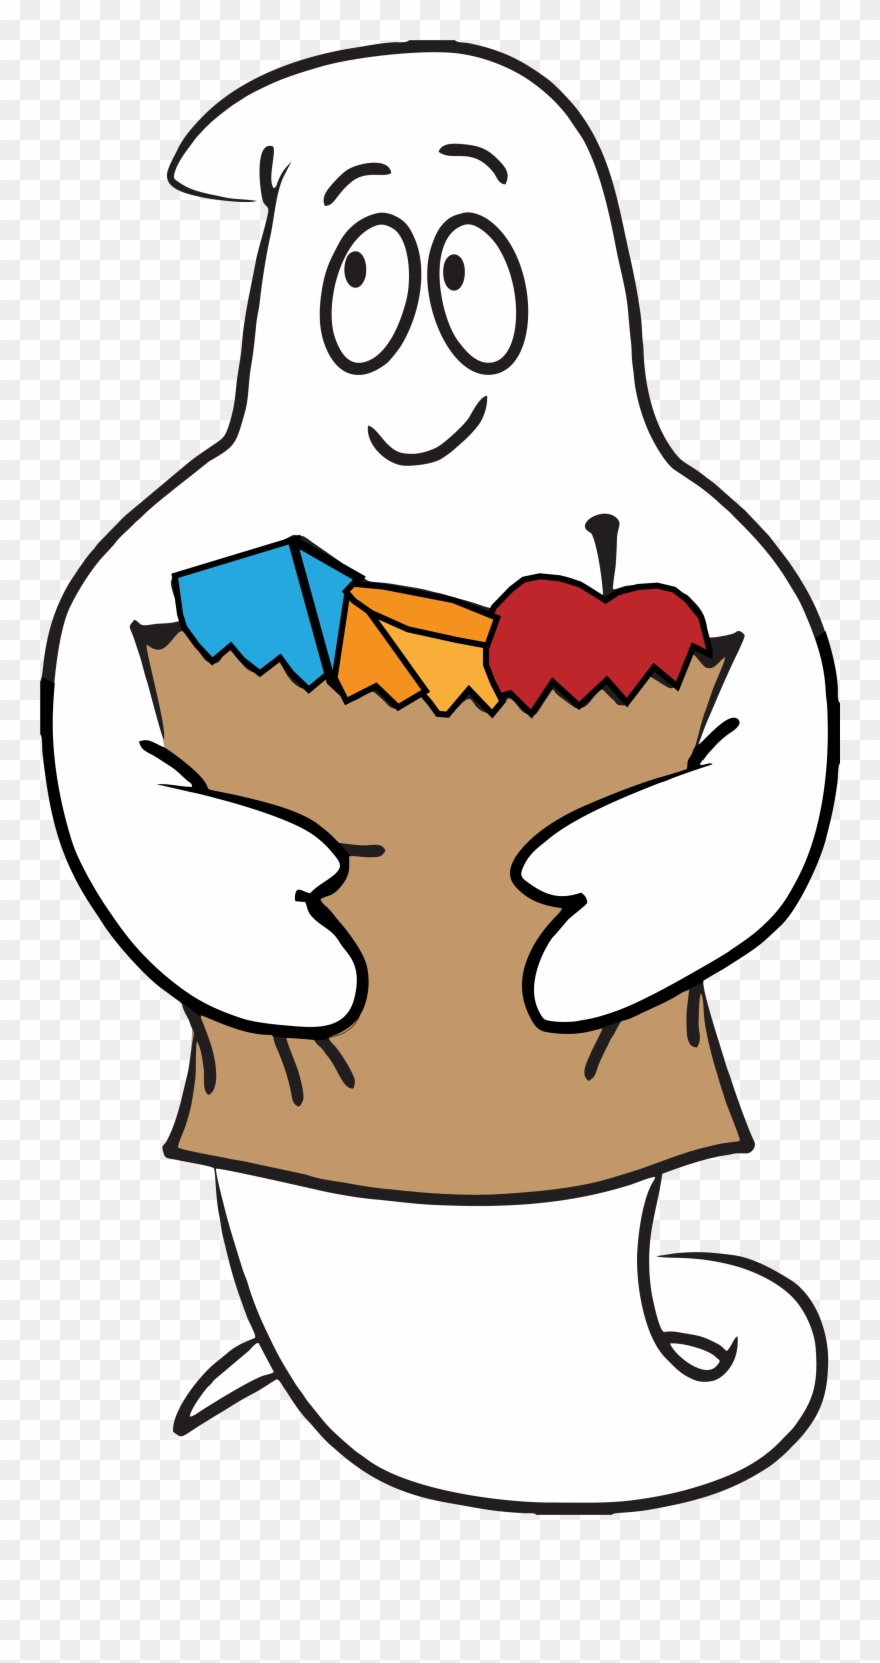 Spooky ghost to be. Hungry clipart logo